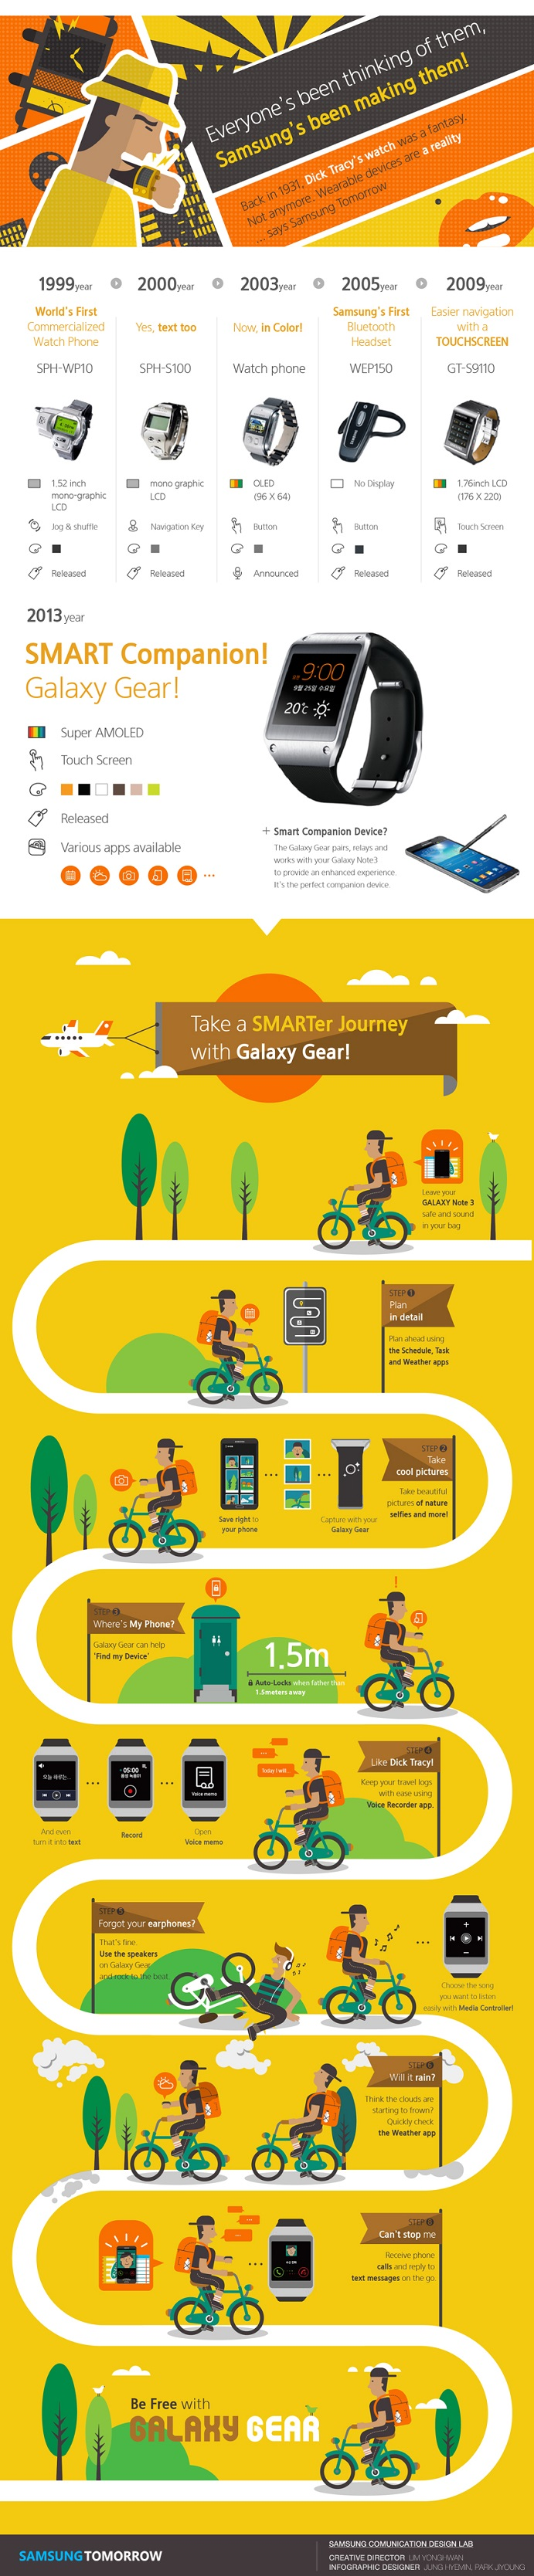 Samsung has been making wearable devices since the end of 90's. This infographic shows the previous wearable devices developed by Samsung Electronics. It also explains the various function of the Galaxy Gear.